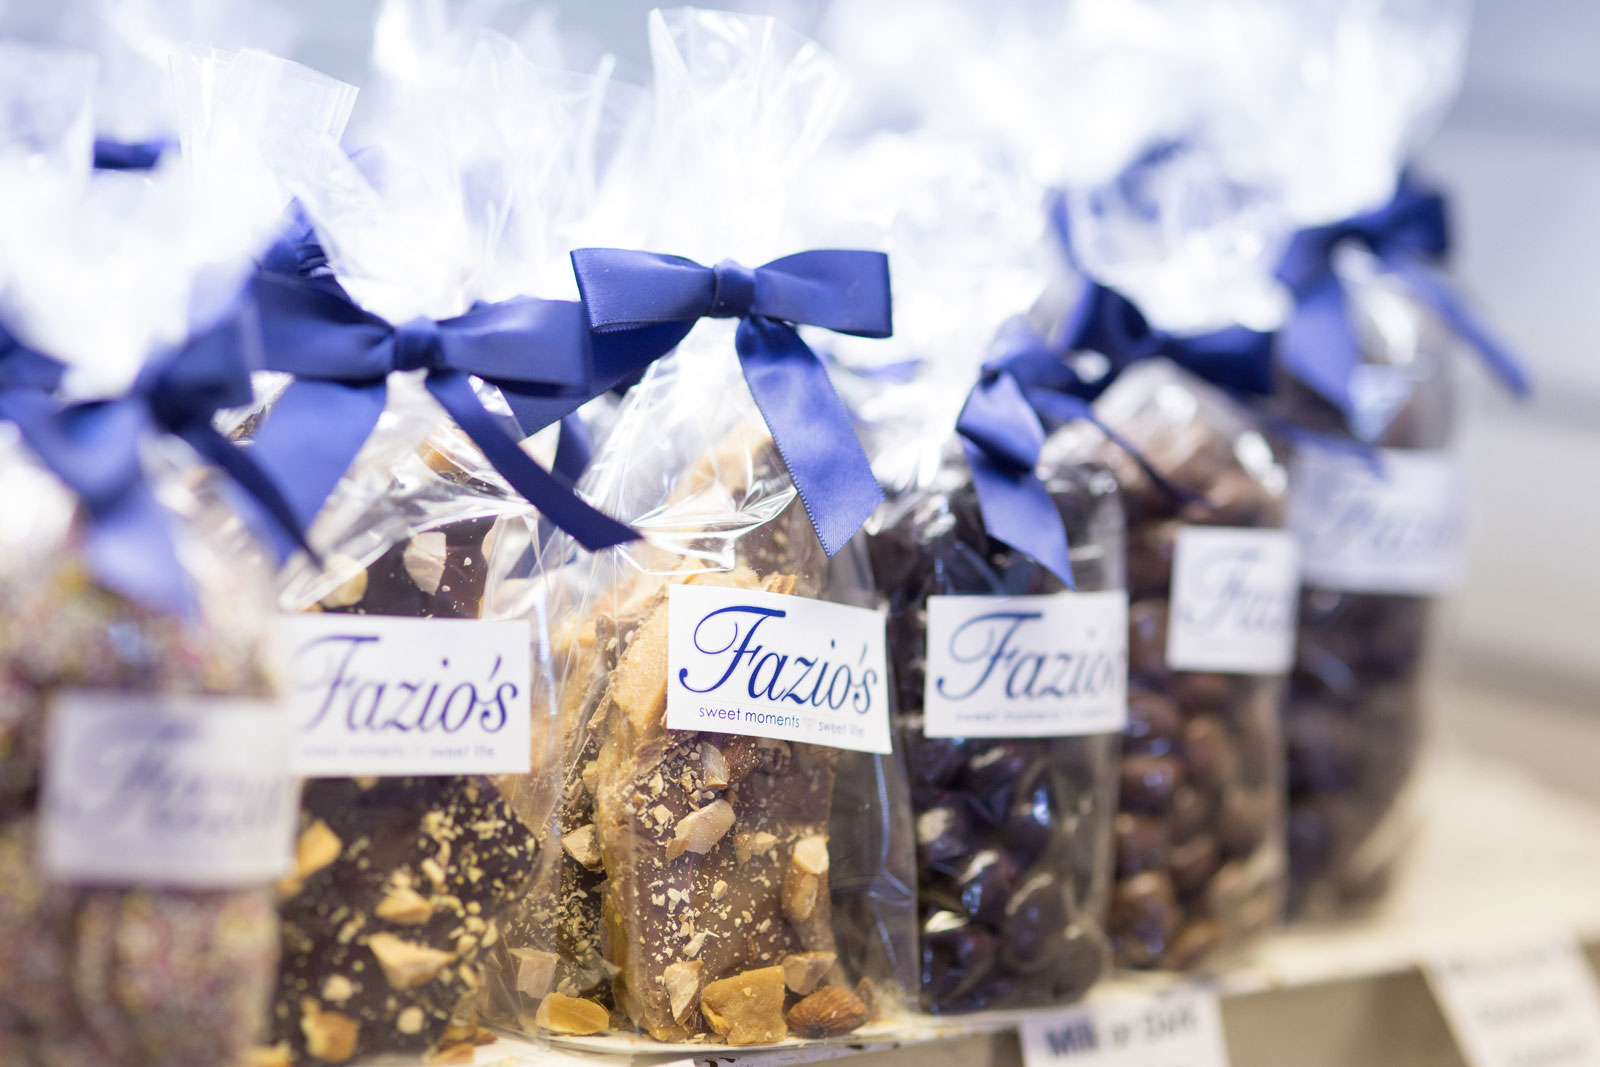 bags of fazios chocolate